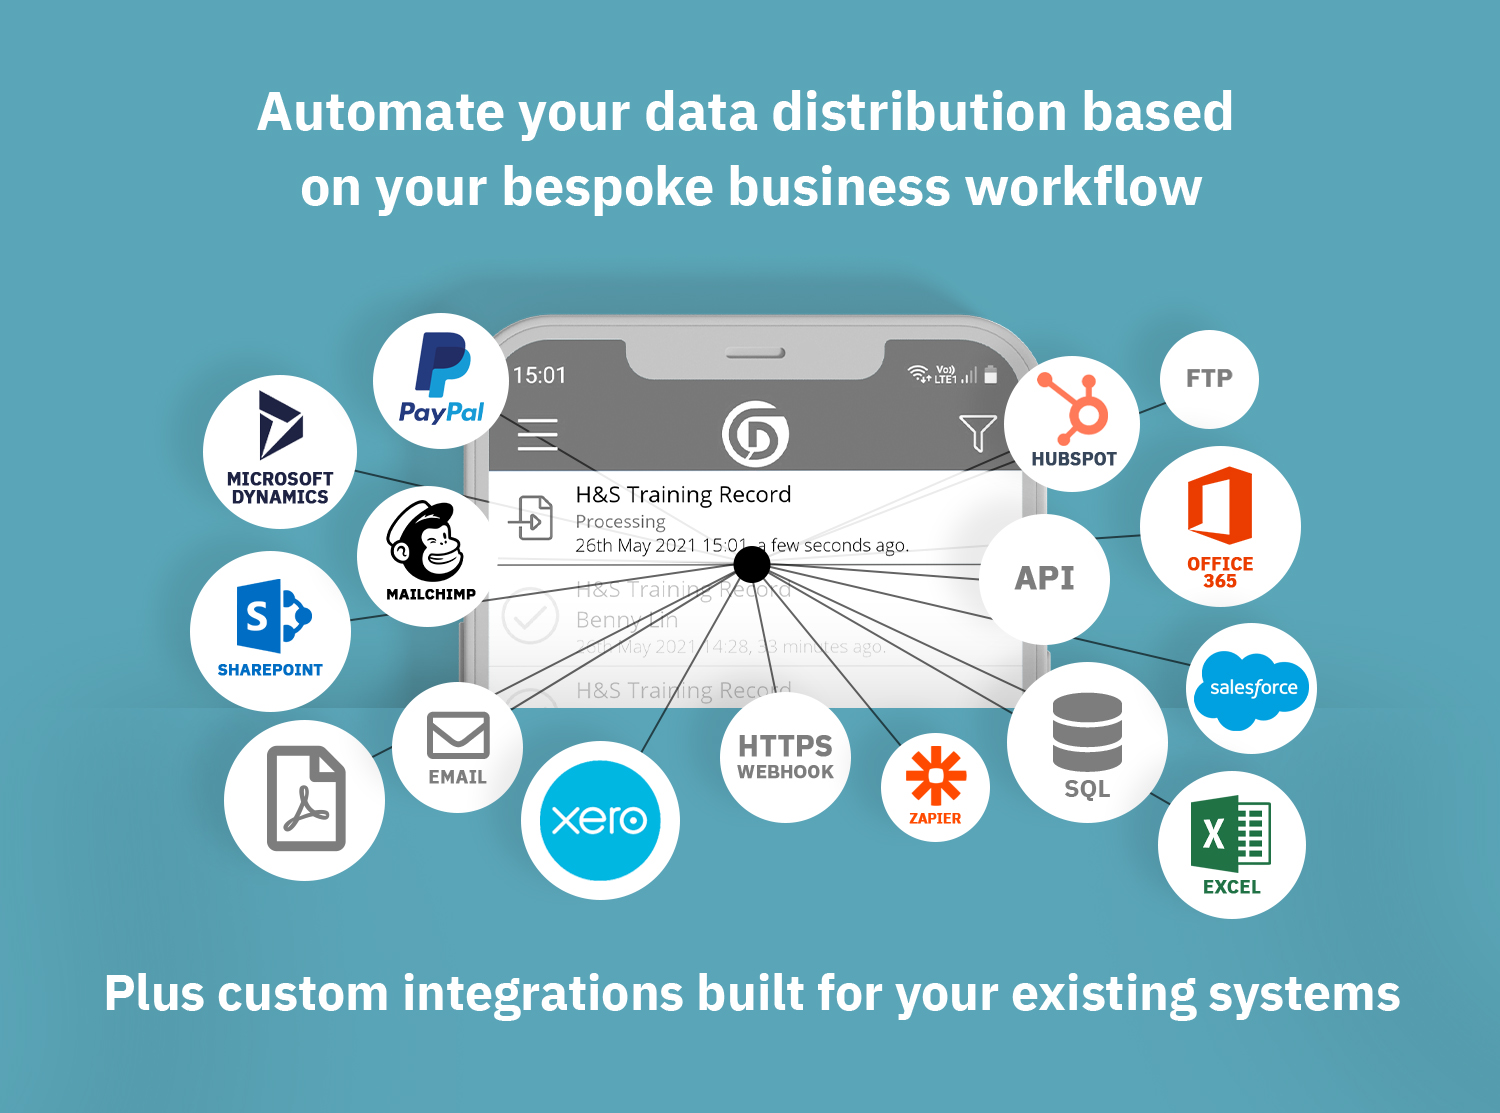 Automate your data distribution based on your bespoke business workflow